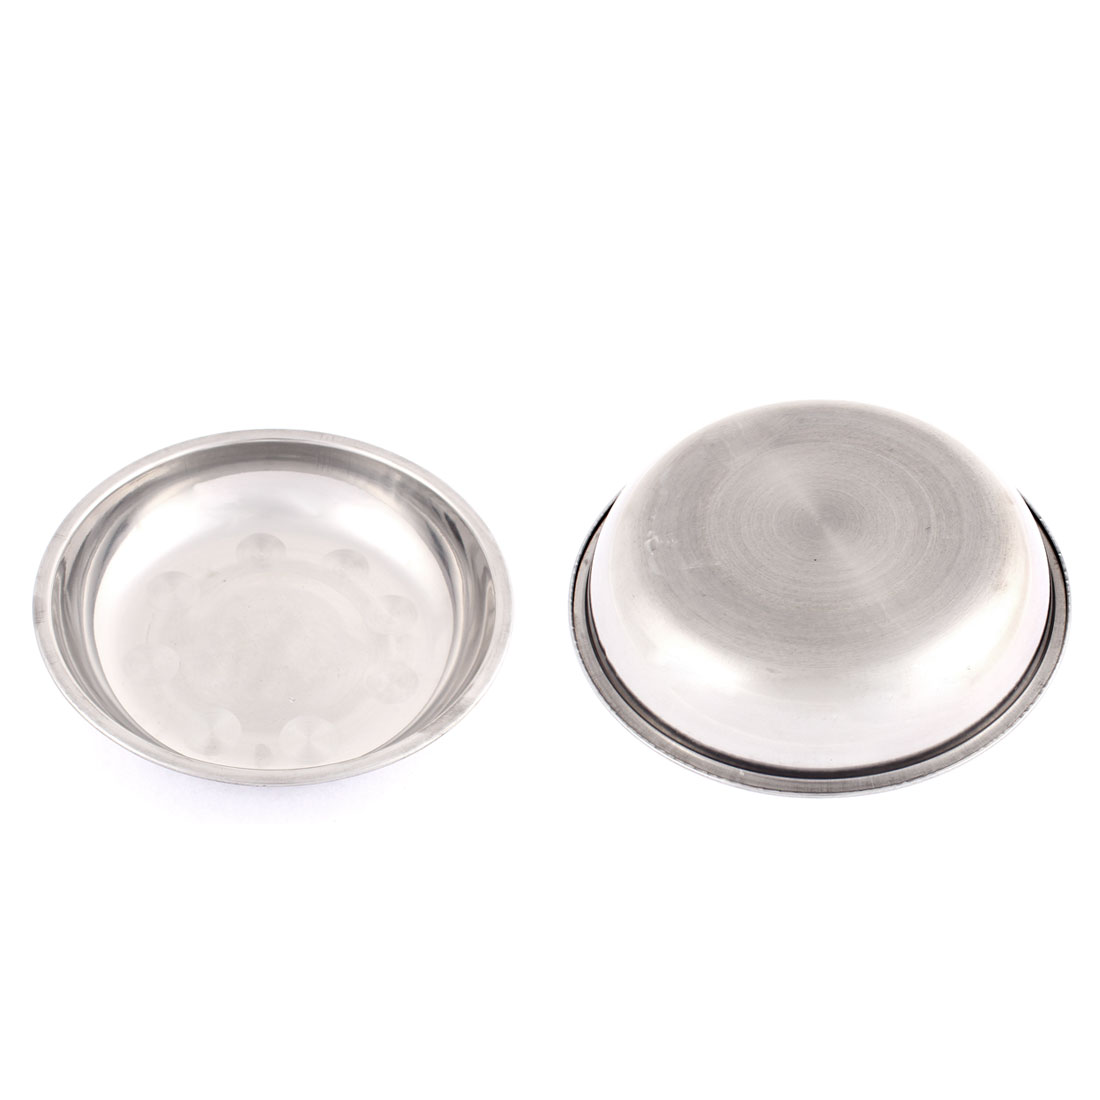 Round Shape Dinner Dish Plate Holder Container 2Pcs